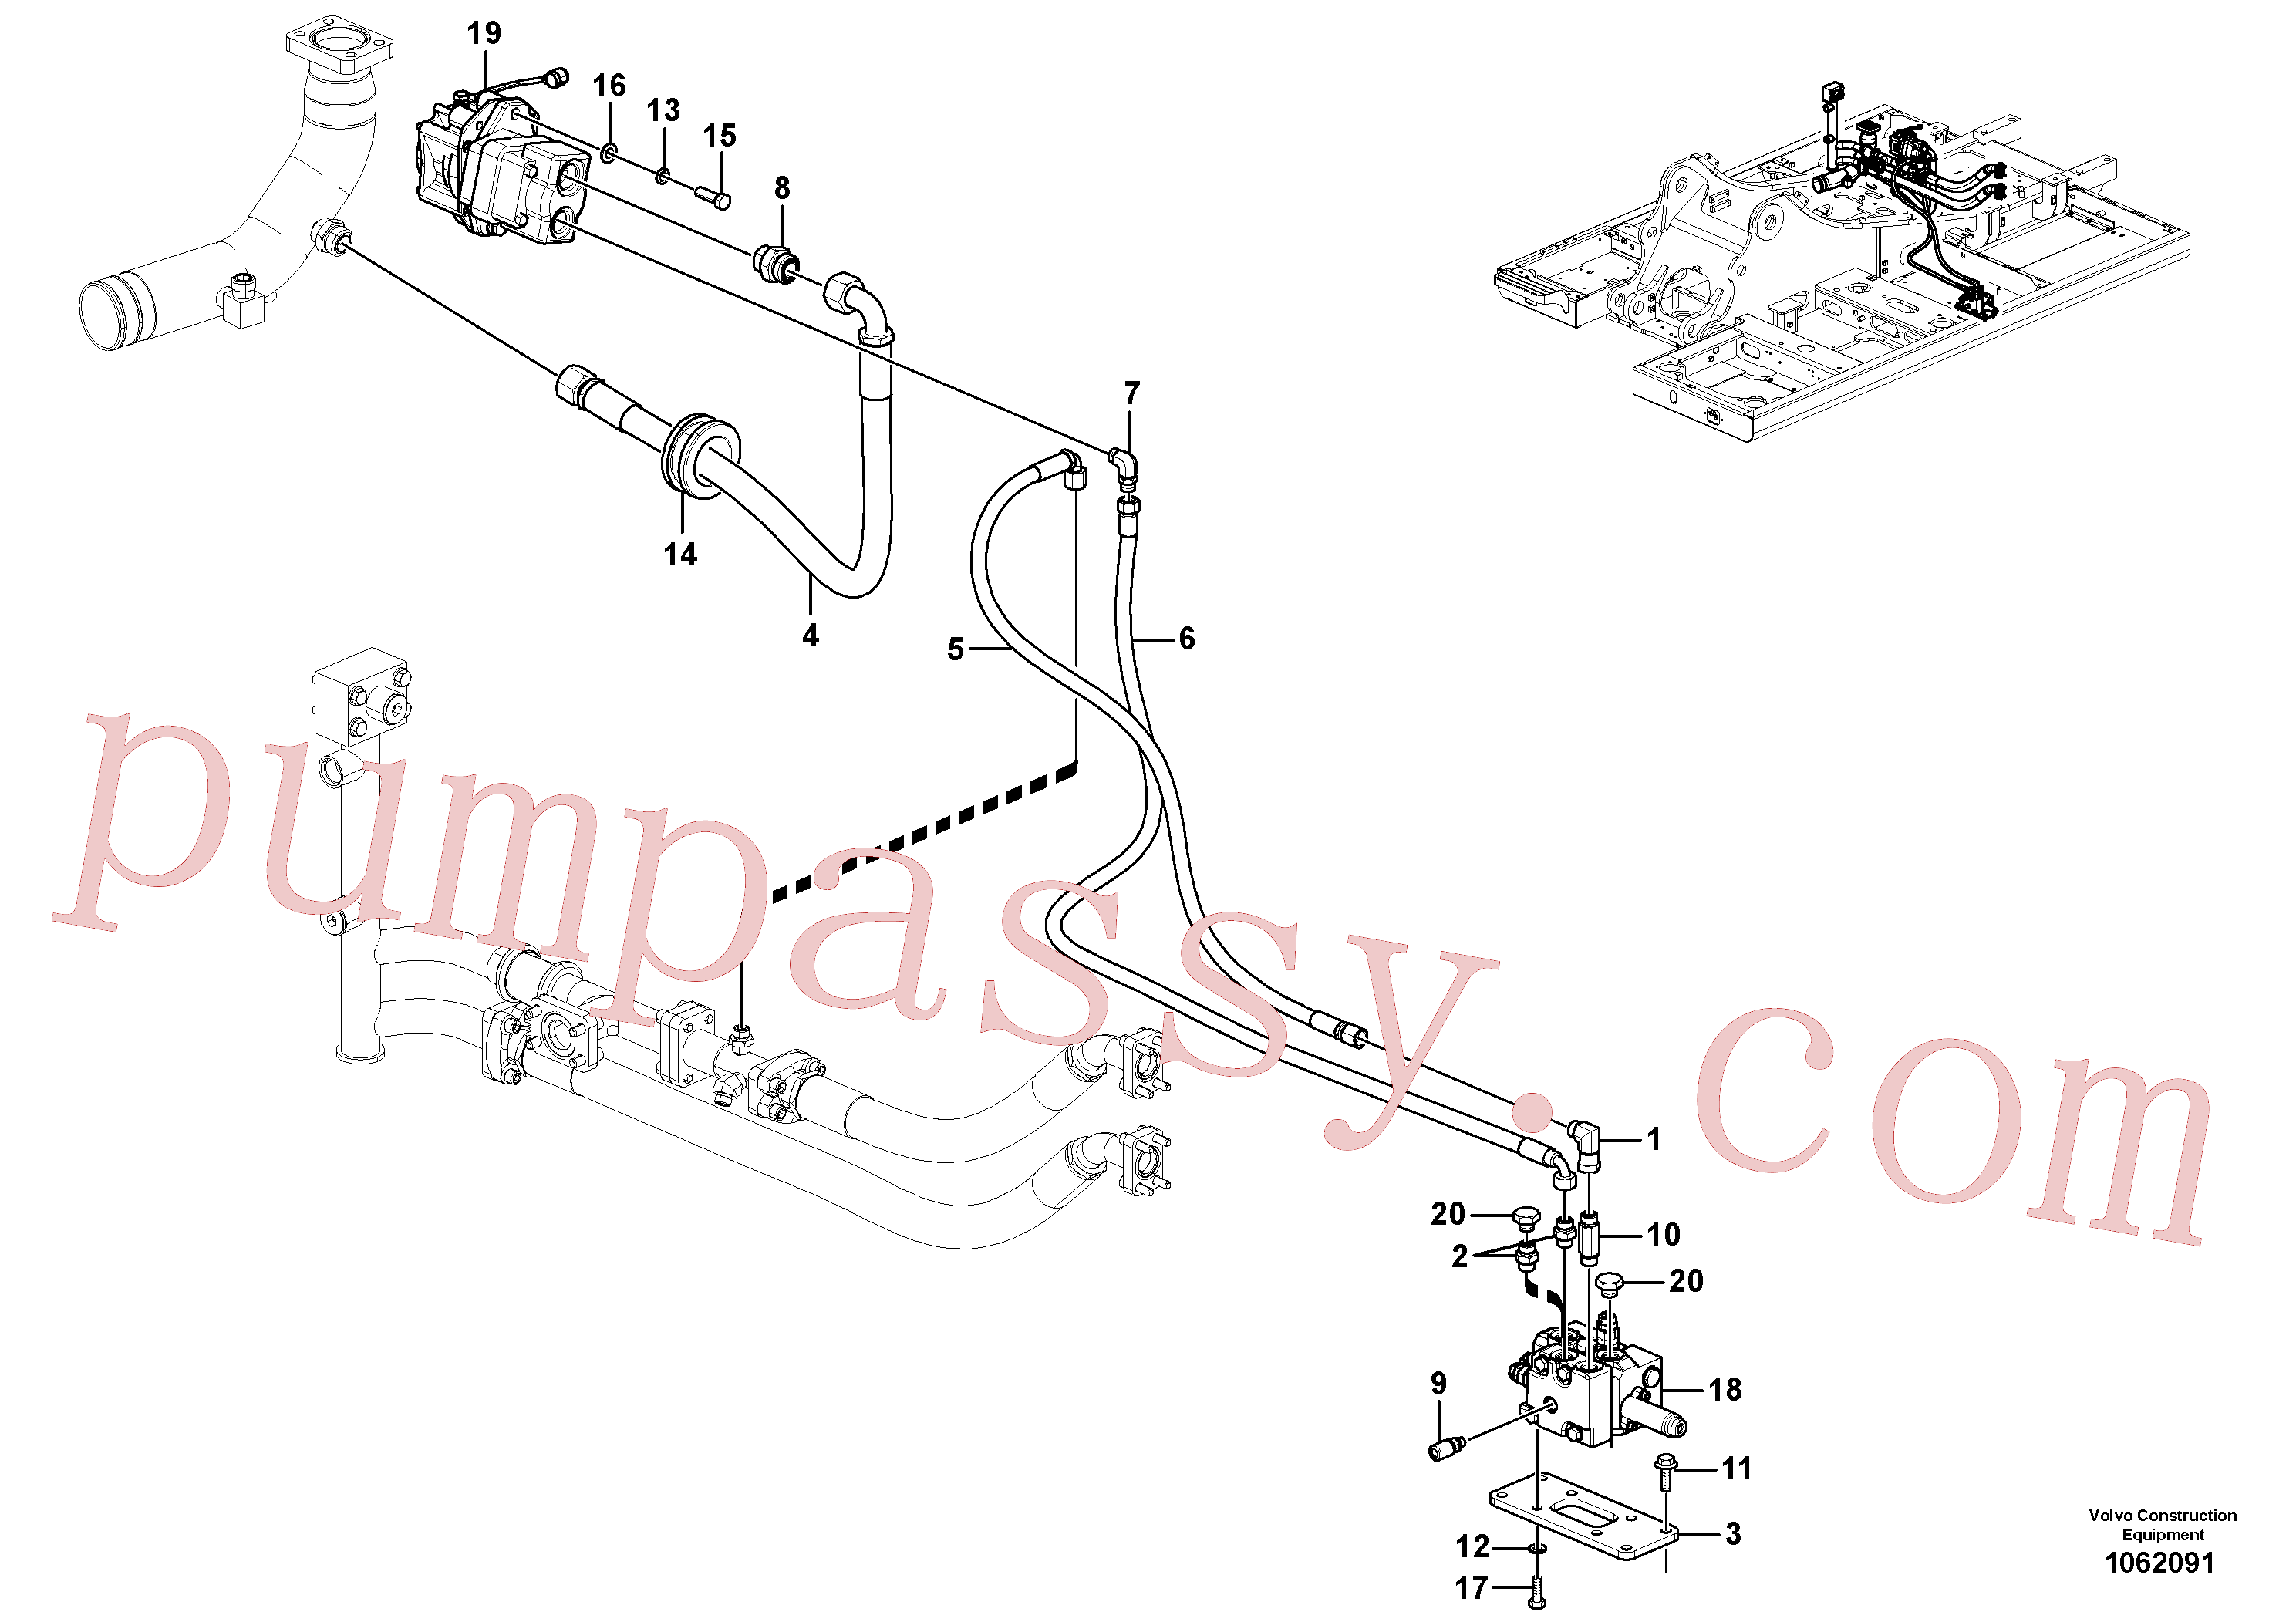 Wholesale VOE17200447 Hose assembly for Volvo Excavator